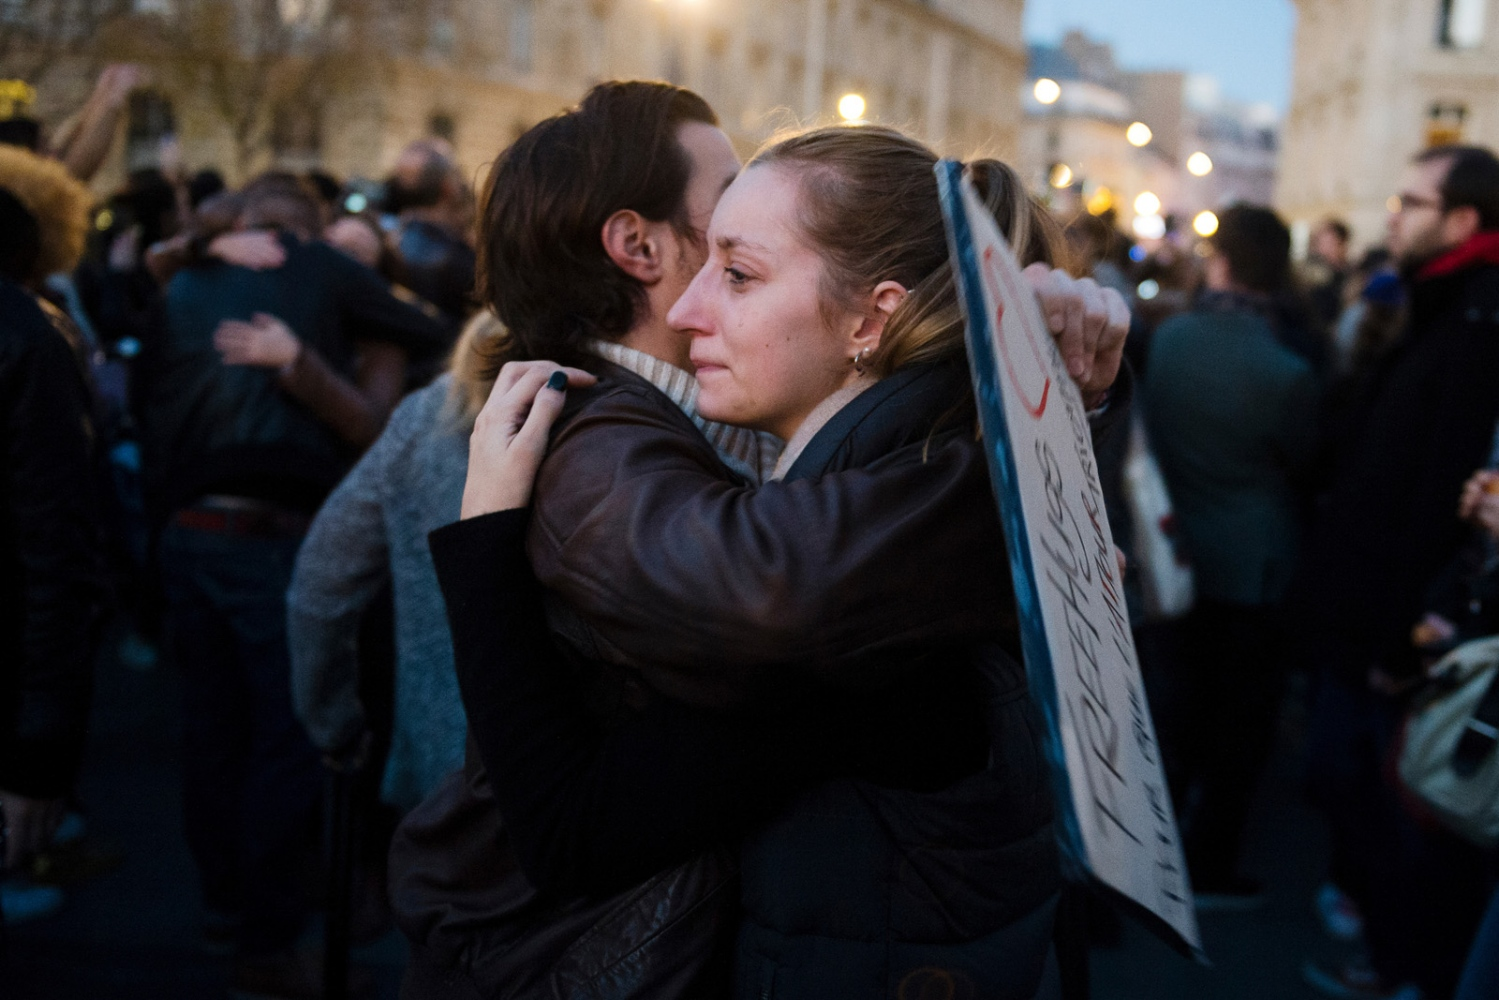 Free hugs are handed out at Place de La RÈpublique two nights after several coordinated terroristattacks killed over a hundred people in Paris, France.